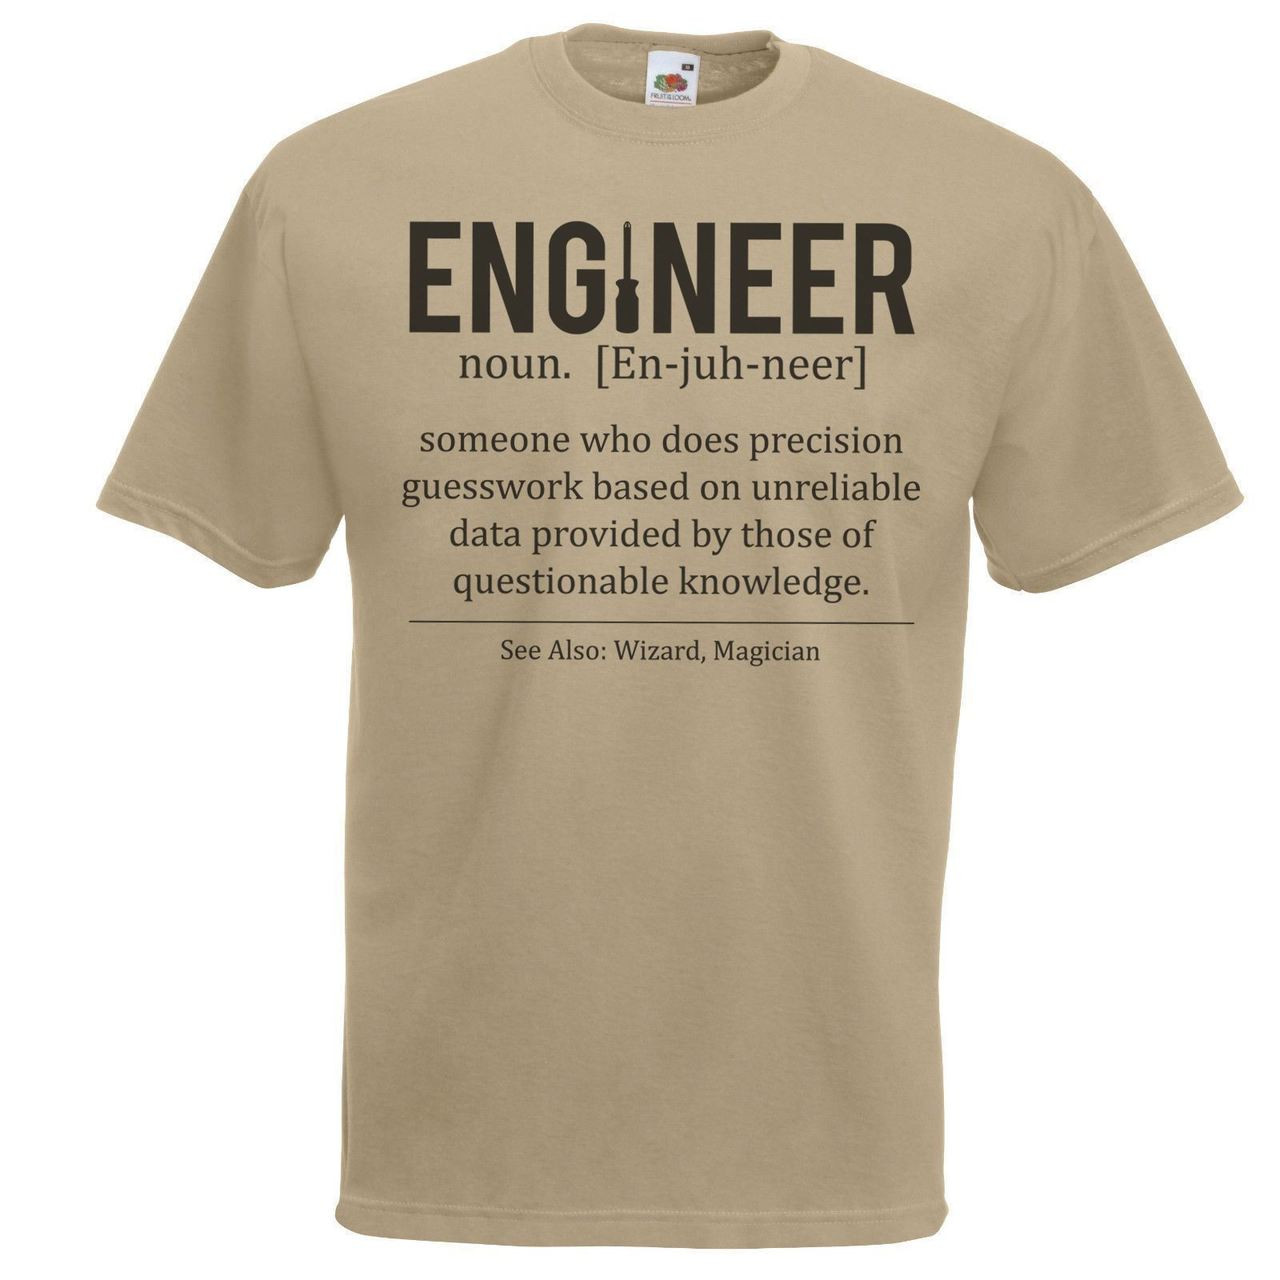 68e3be238 Adult Male Khaki Engineer Defined T-Shirt Engineering Student TShirt Funny  Novelty Top